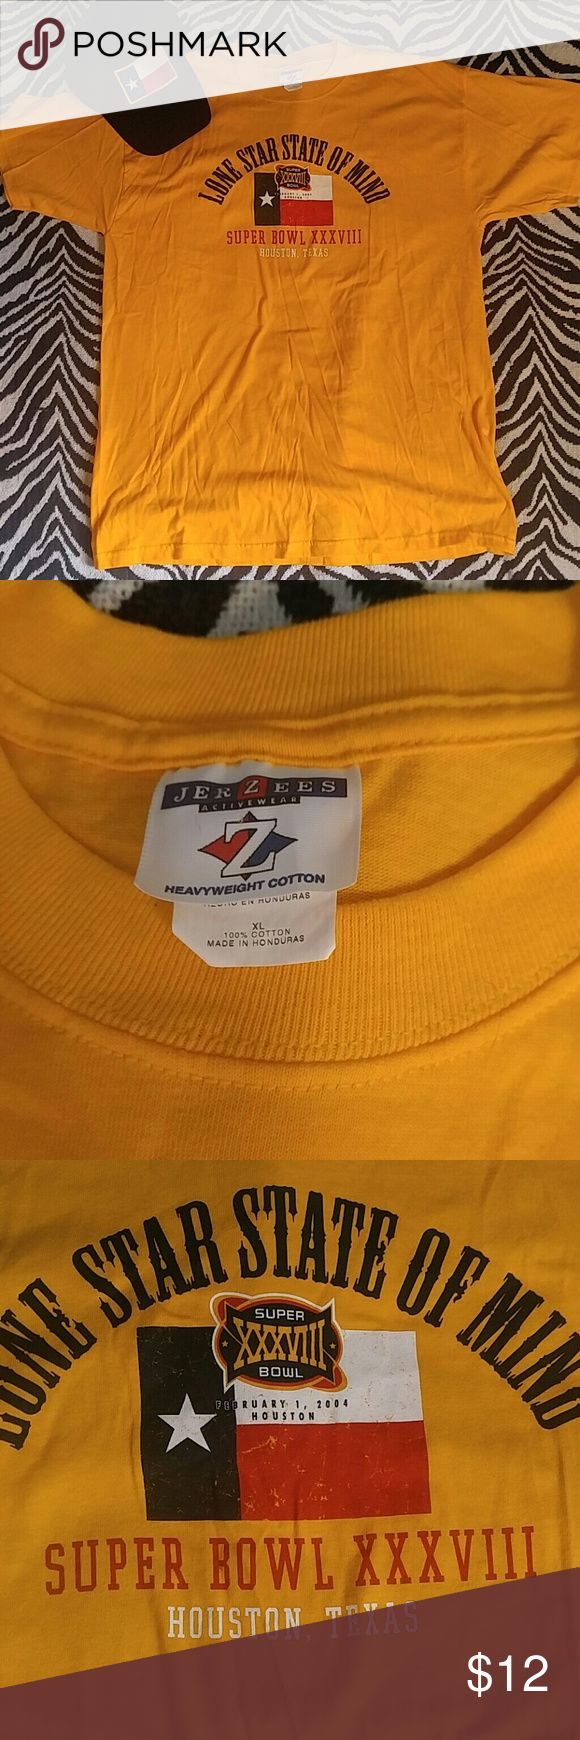 Vintage Super Bowl XXXVIII t shirt L Vintage item from 2004 to celebrate the Super Bowl in Houston. Great condition with stint blue spot on back of sleeve (picture 4) that is not noticeable when worn. Colors really pop! Vintage  Shirts Tees - Short Sleeve